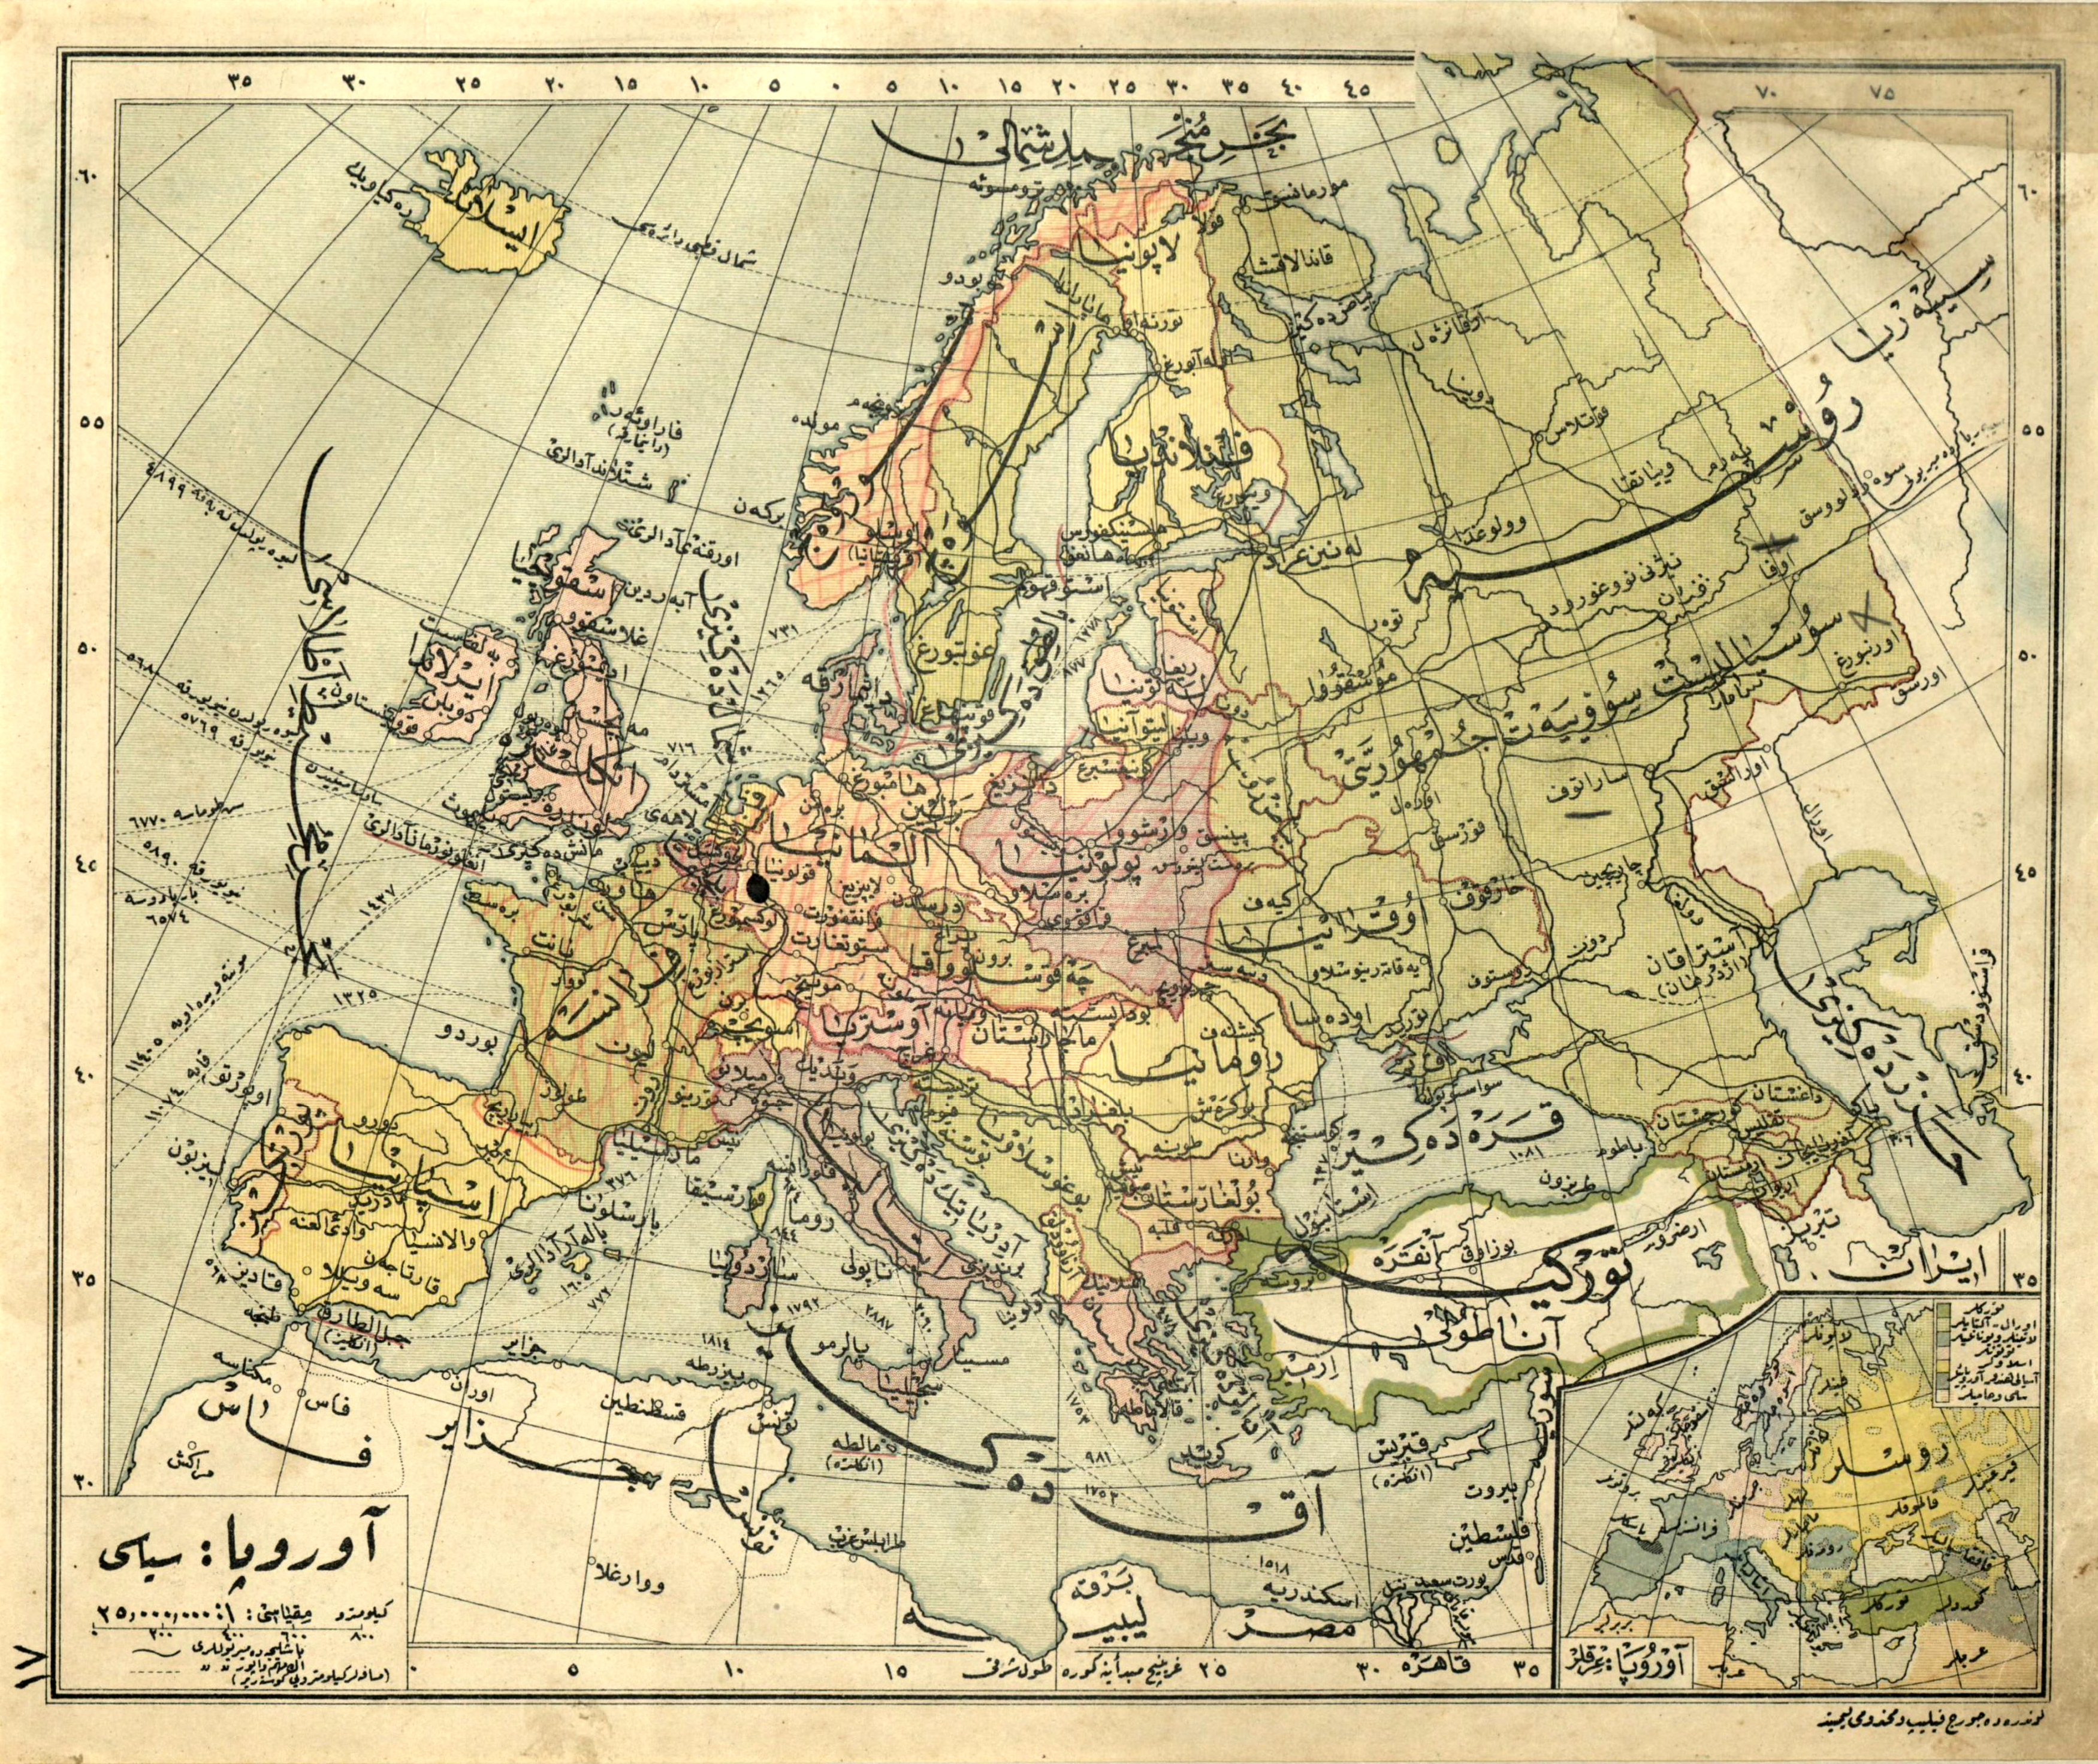 Nazi Map Of Europe.And Here S An Ottoman Map Of Nazi Europe Look Closely 3500x2944